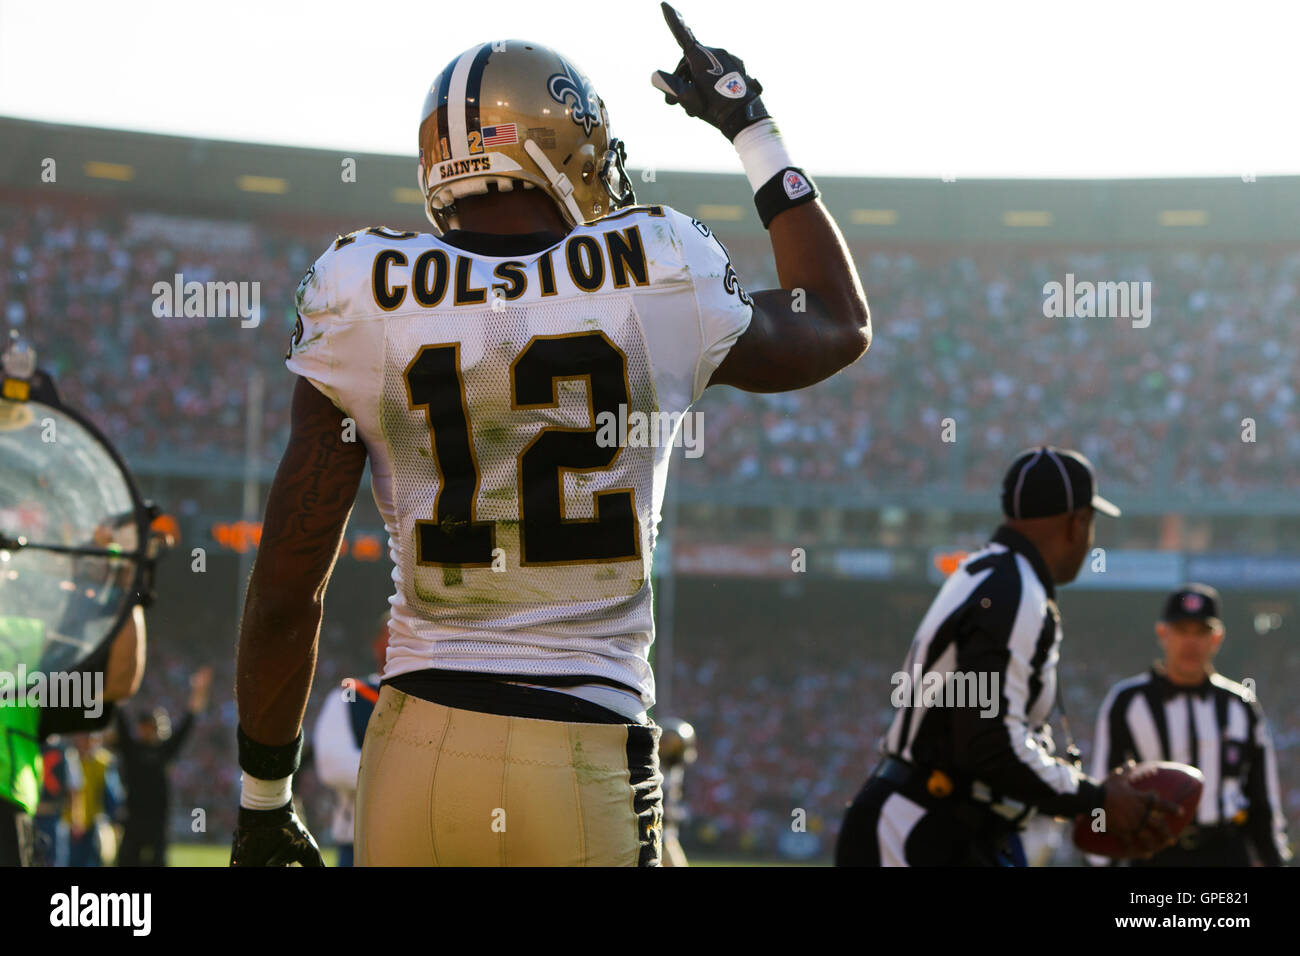 newest d7a85 da1c8 Marques Colston Stock Photos & Marques Colston Stock Images ...